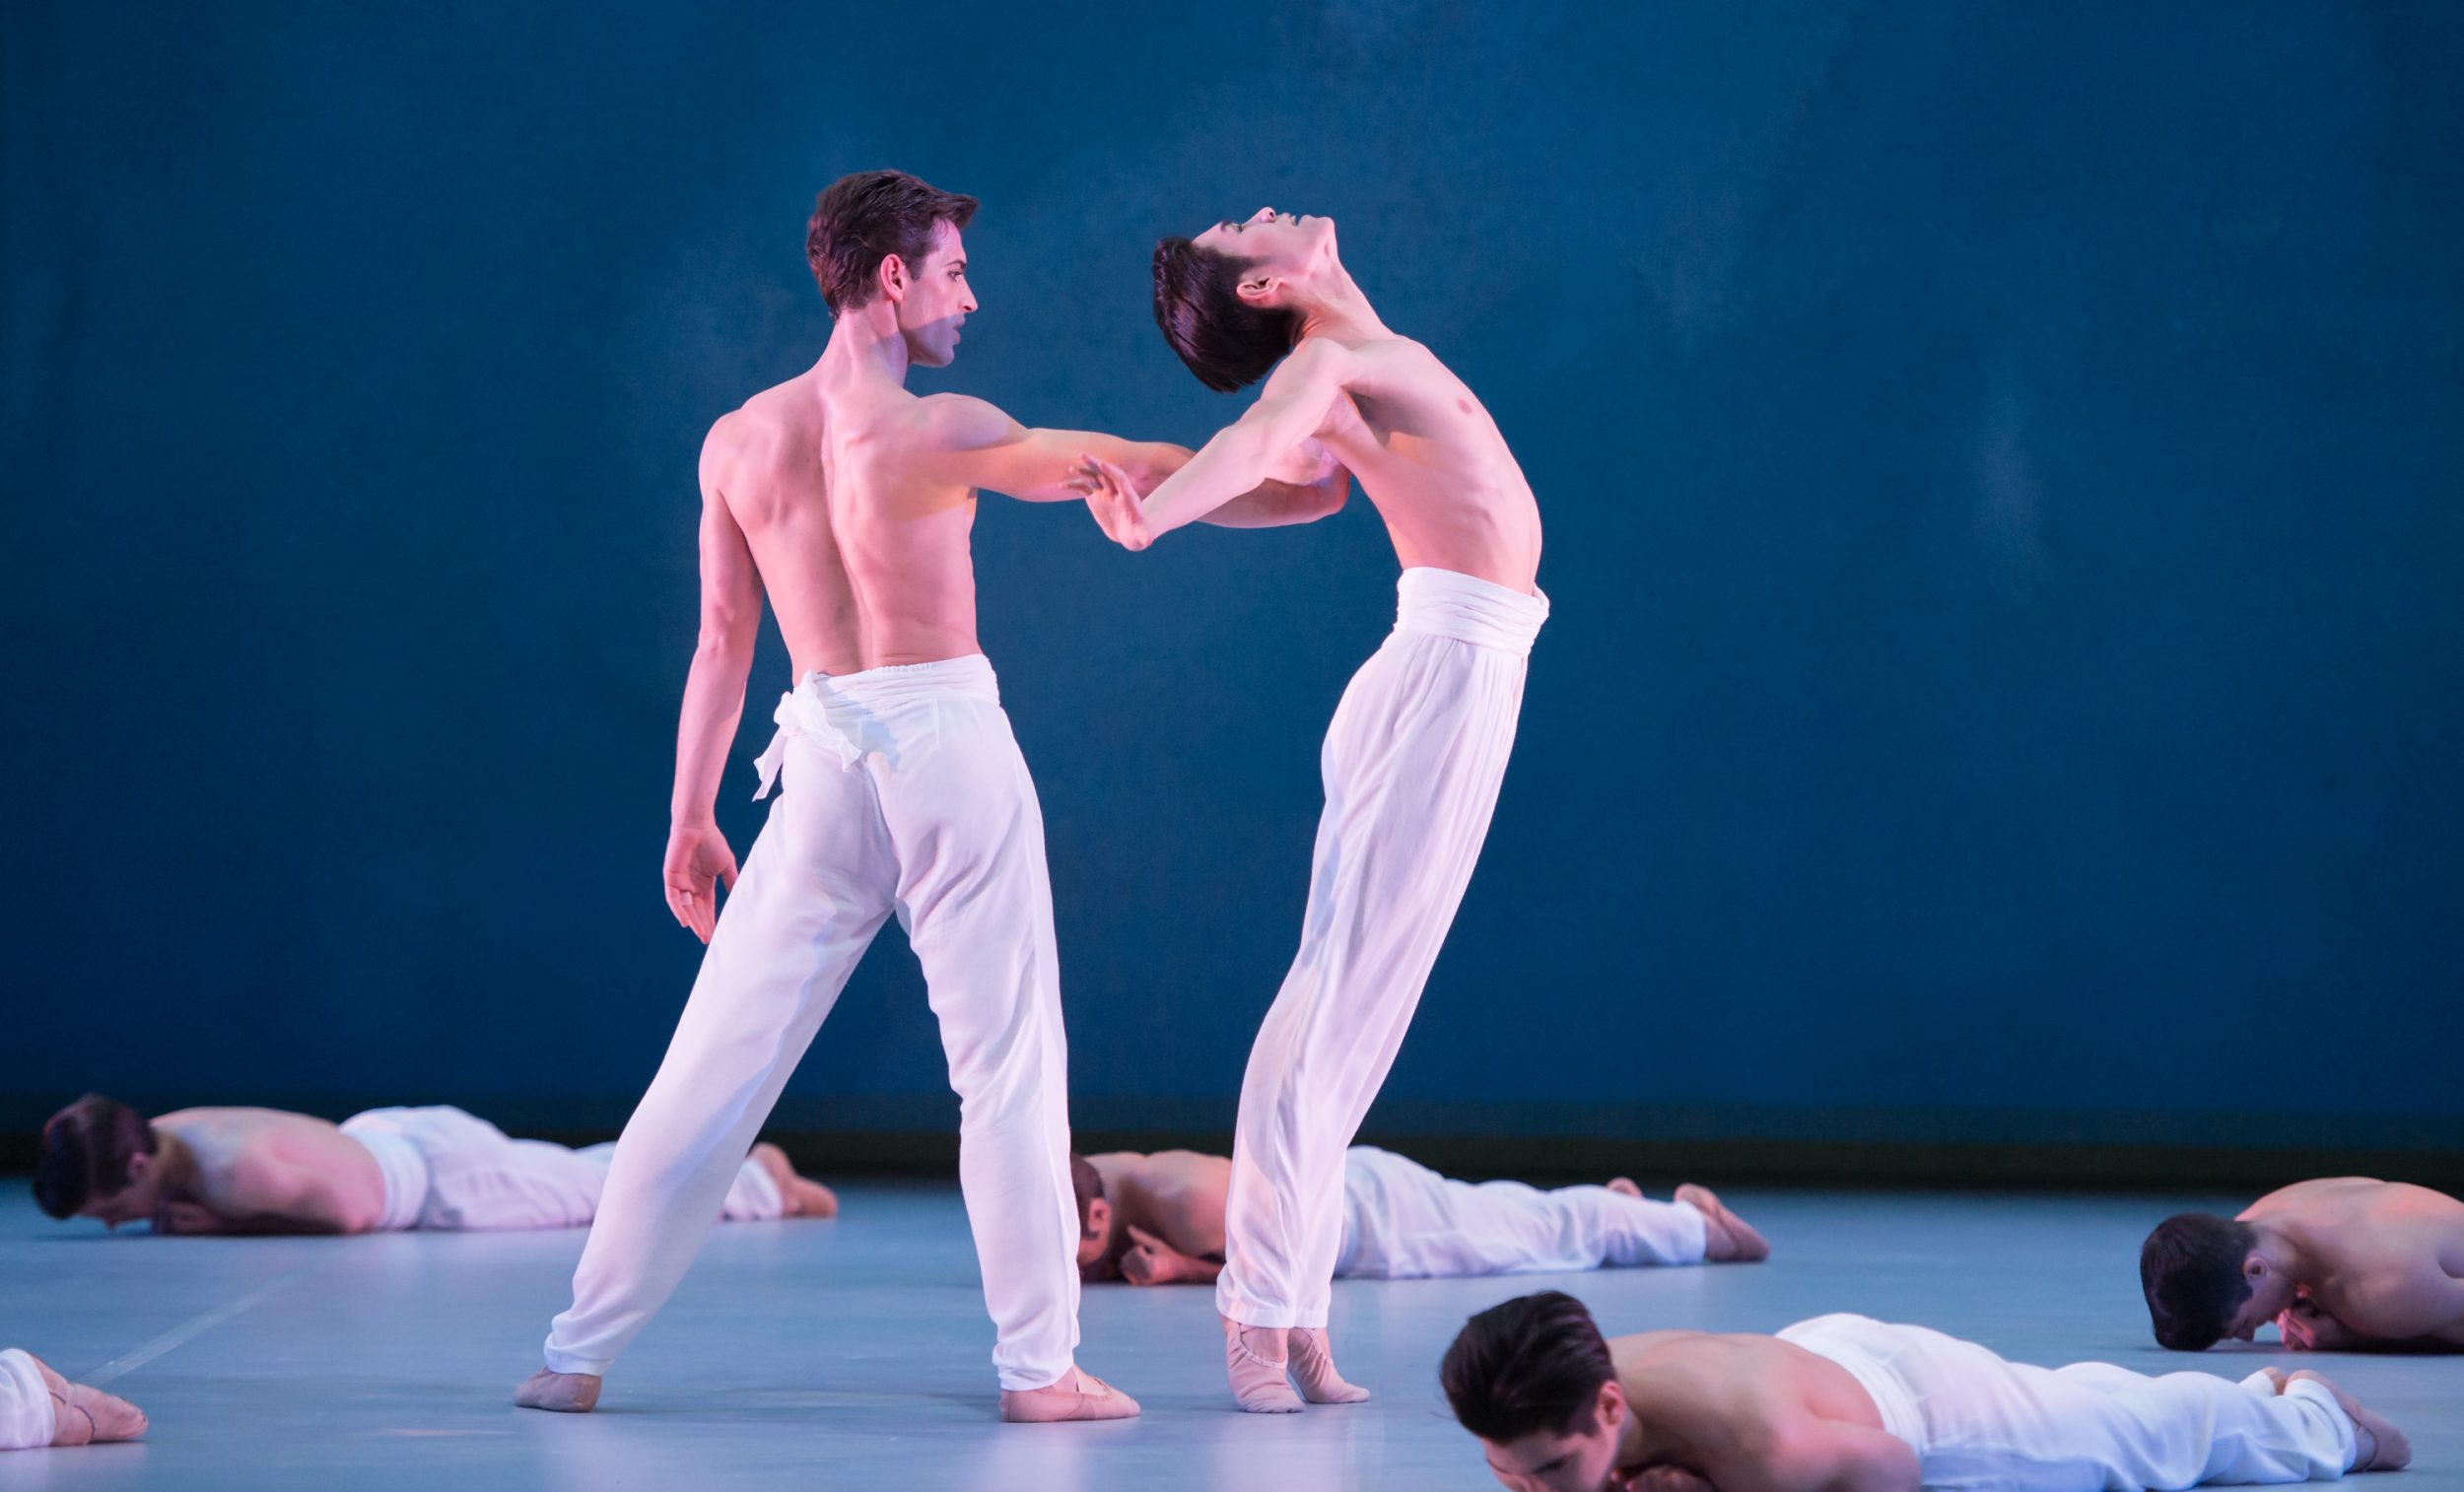 John Neumeier's Spring & Fall during English National Ballet's dress rehearsal for their Modern Masters triple bill